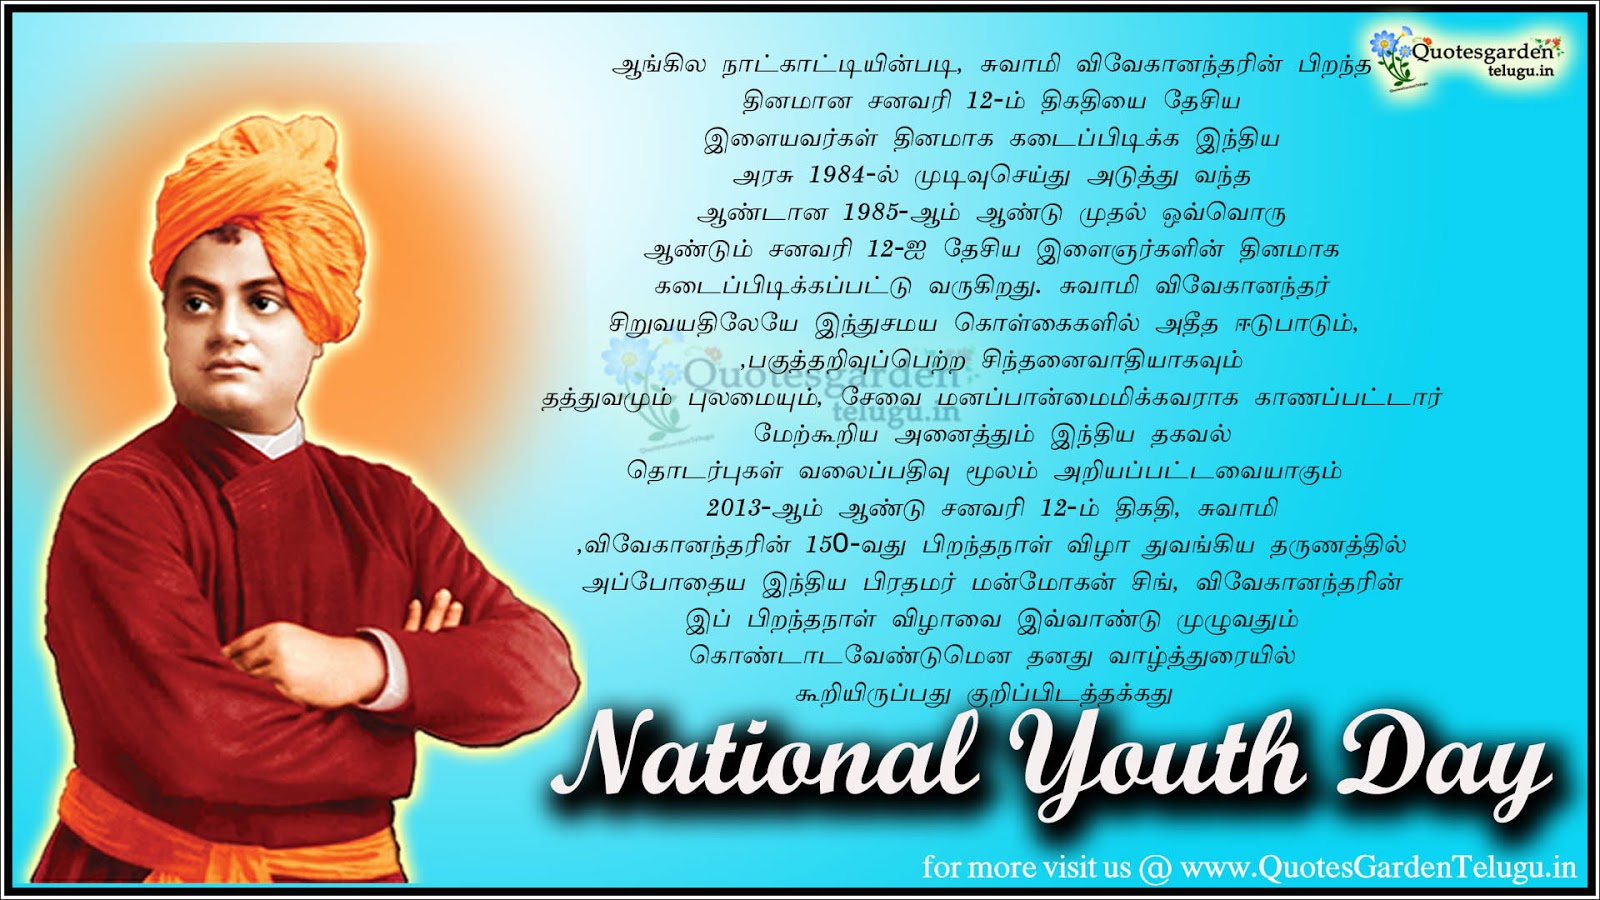 Swamy Vivekananda Jayanti and National Youth Day in Tamil ...